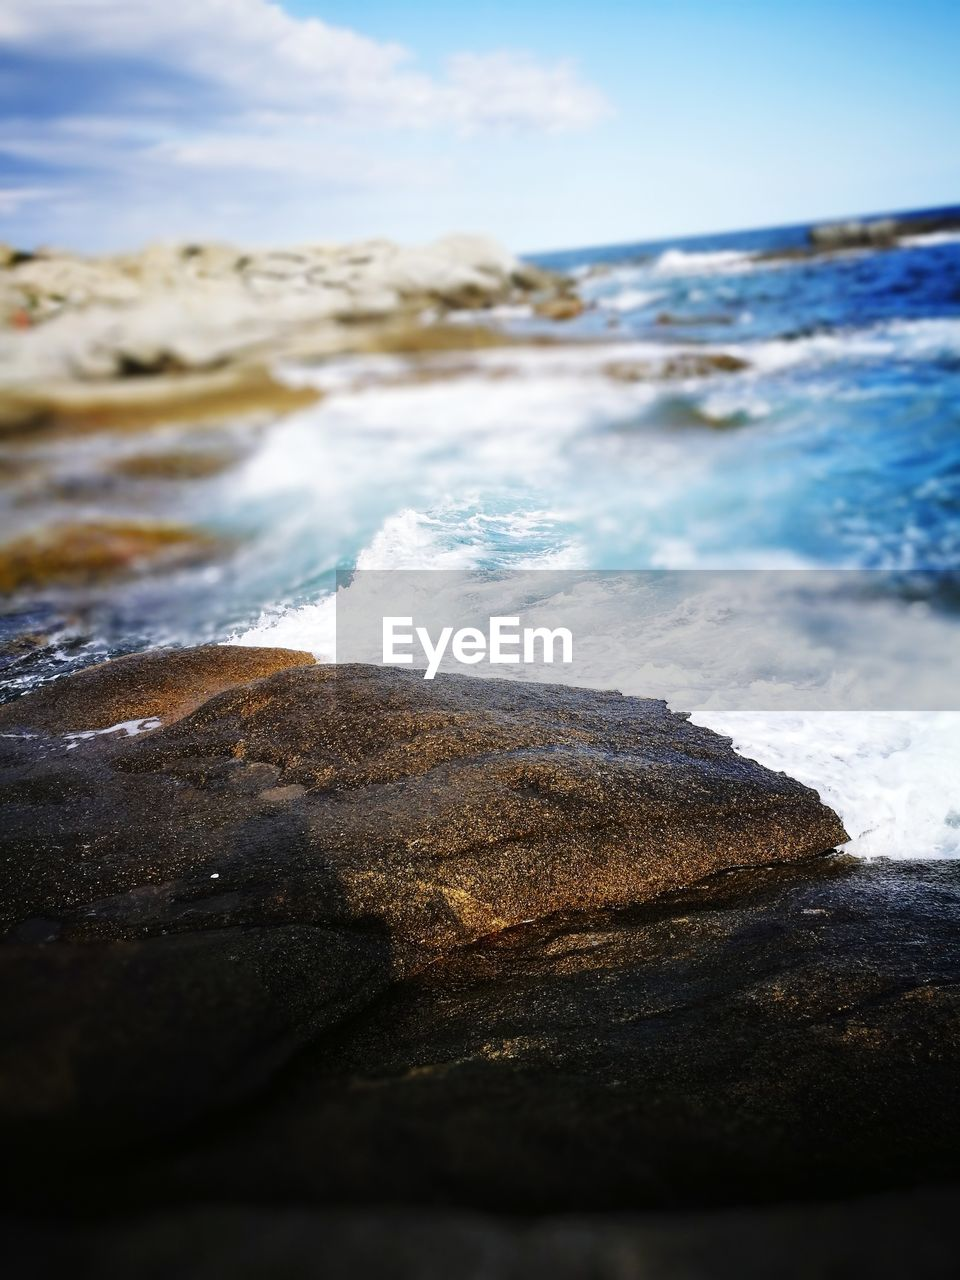 sea, water, nature, beauty in nature, no people, rock - object, outdoors, sky, day, tranquility, scenics, wave, beach, horizon over water, close-up